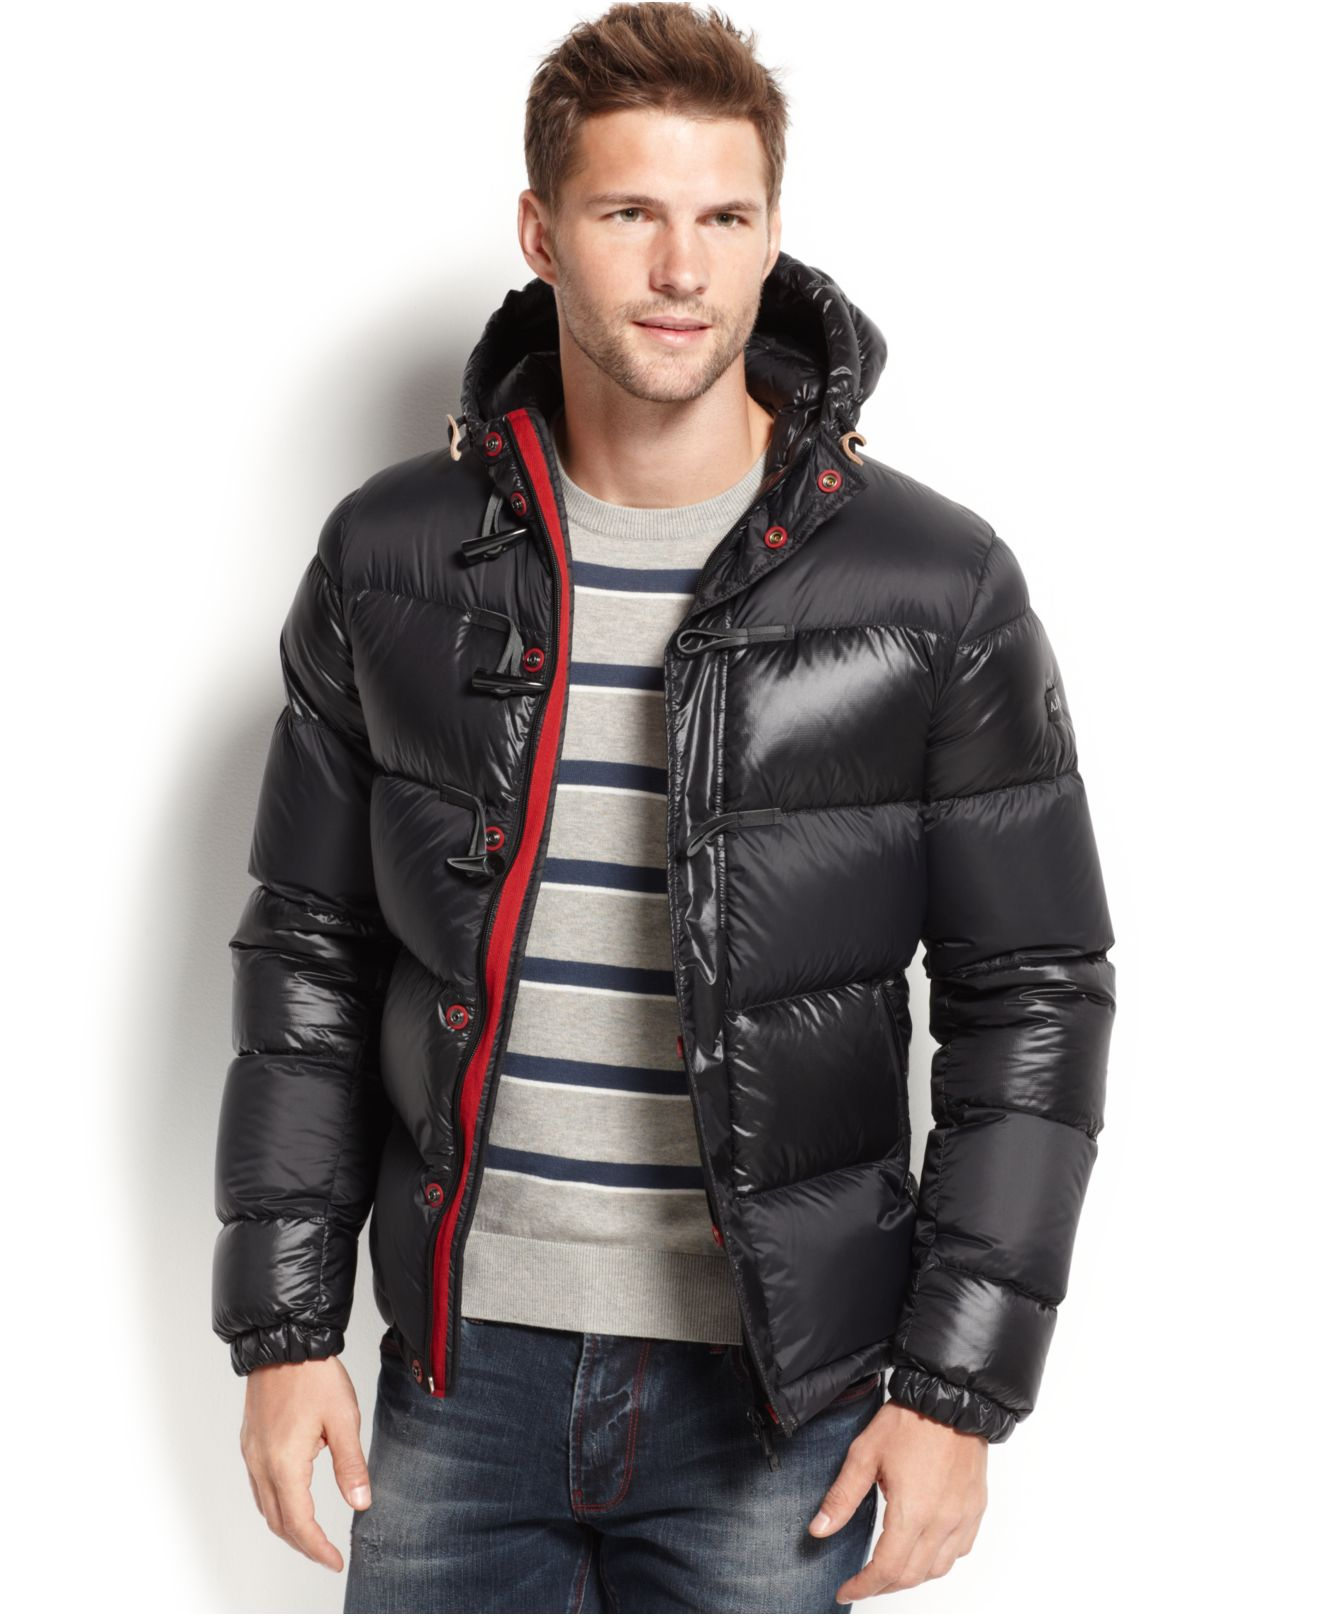 lyst armani jeans puffer jacket in black for men. Black Bedroom Furniture Sets. Home Design Ideas